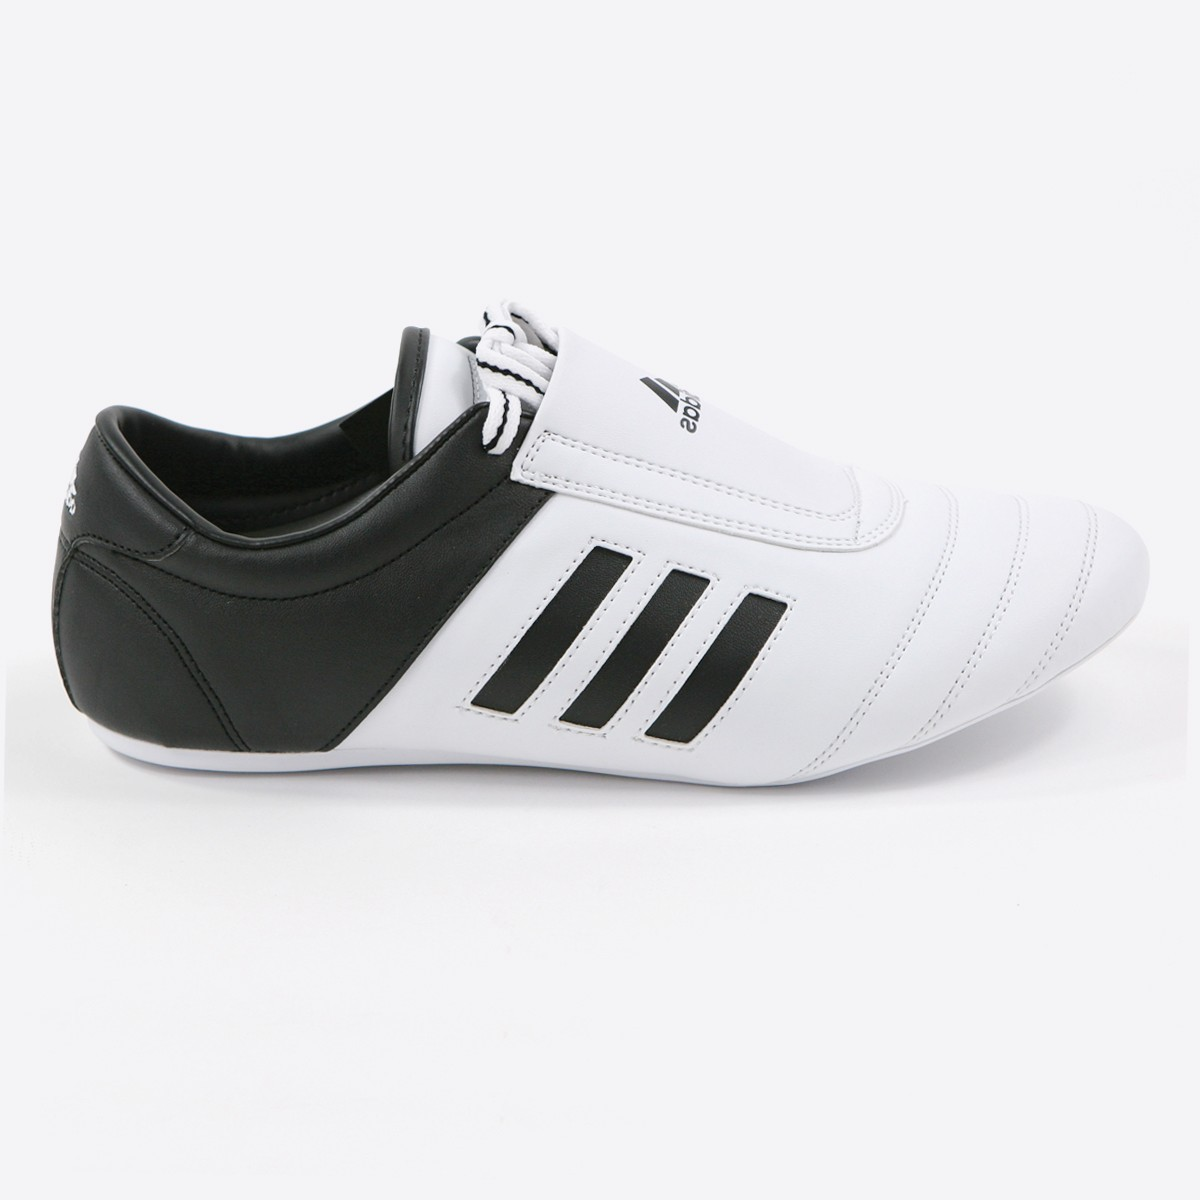 adidas Adi-Kick Taekwondo Shoes